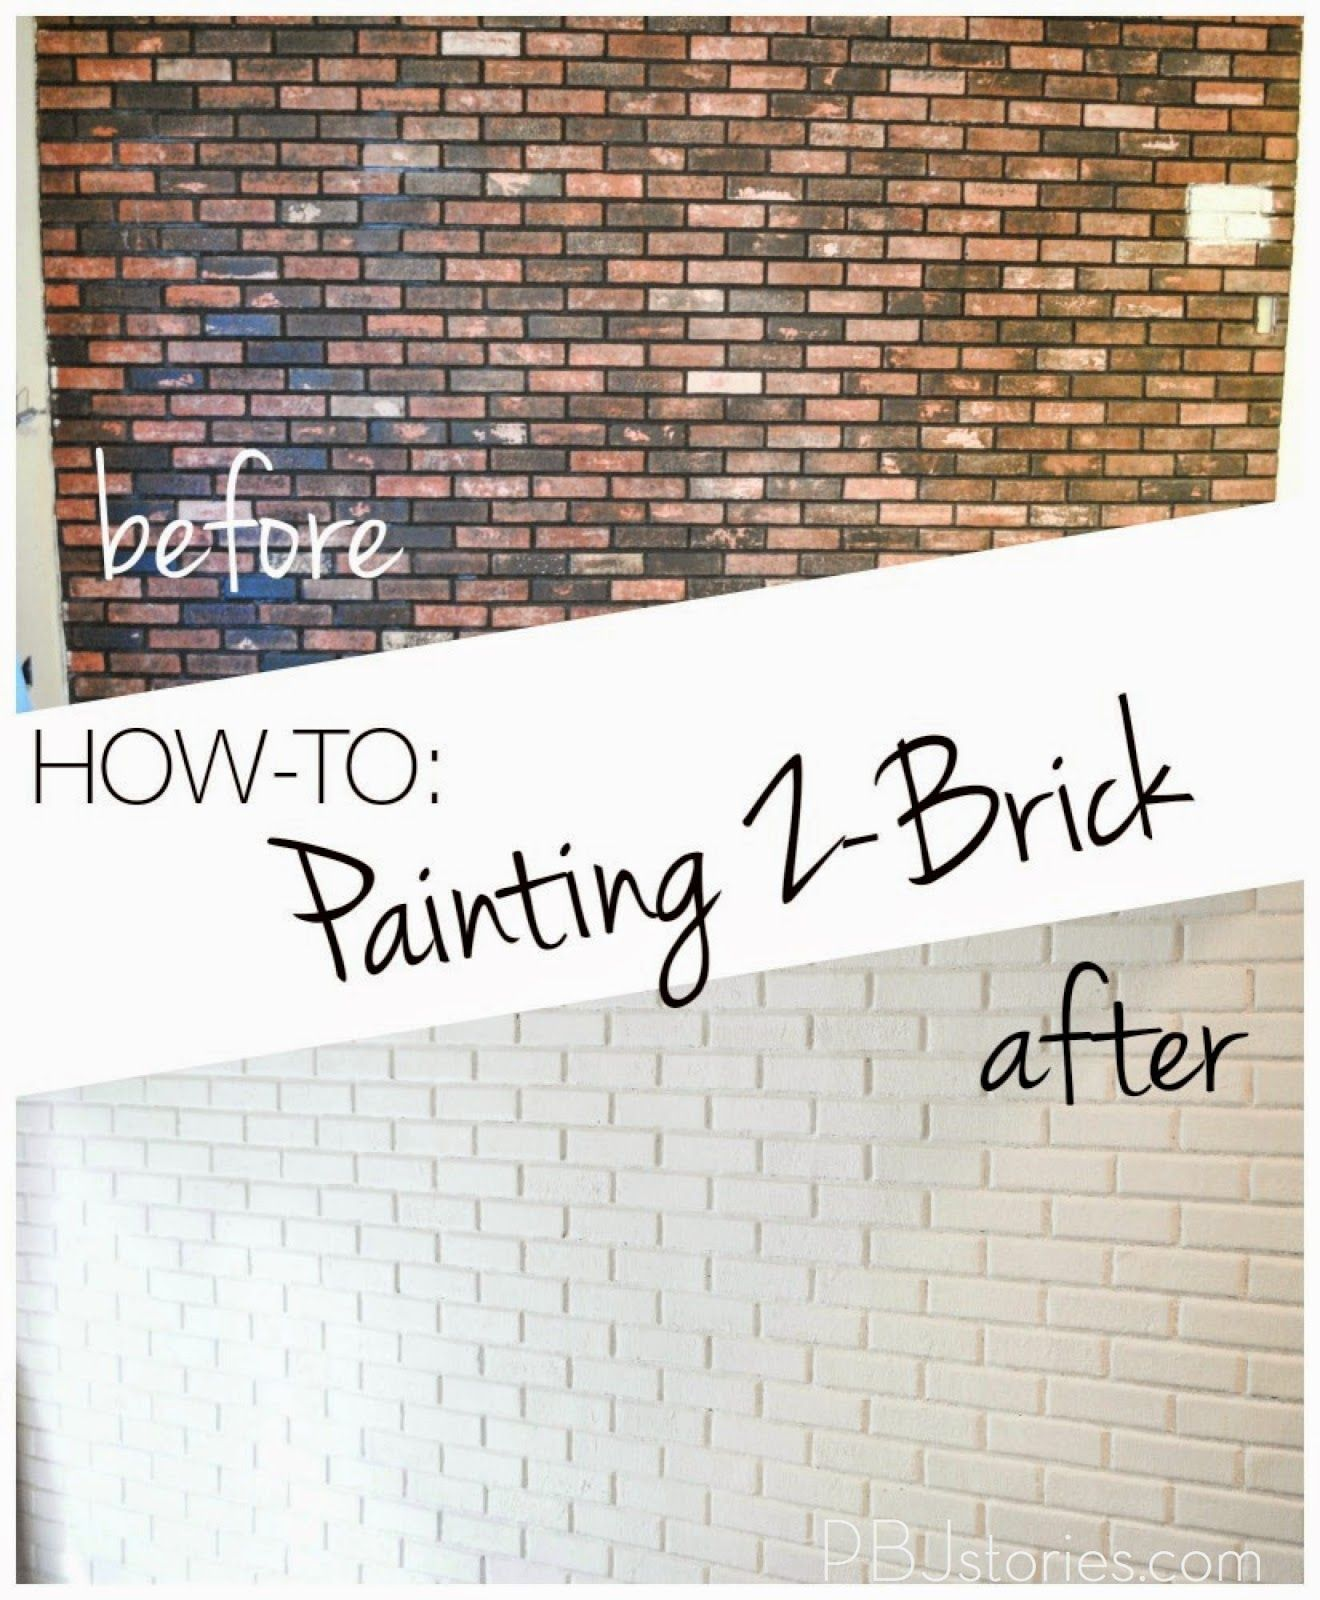 how to paint an interior brick wall pbjstories com home